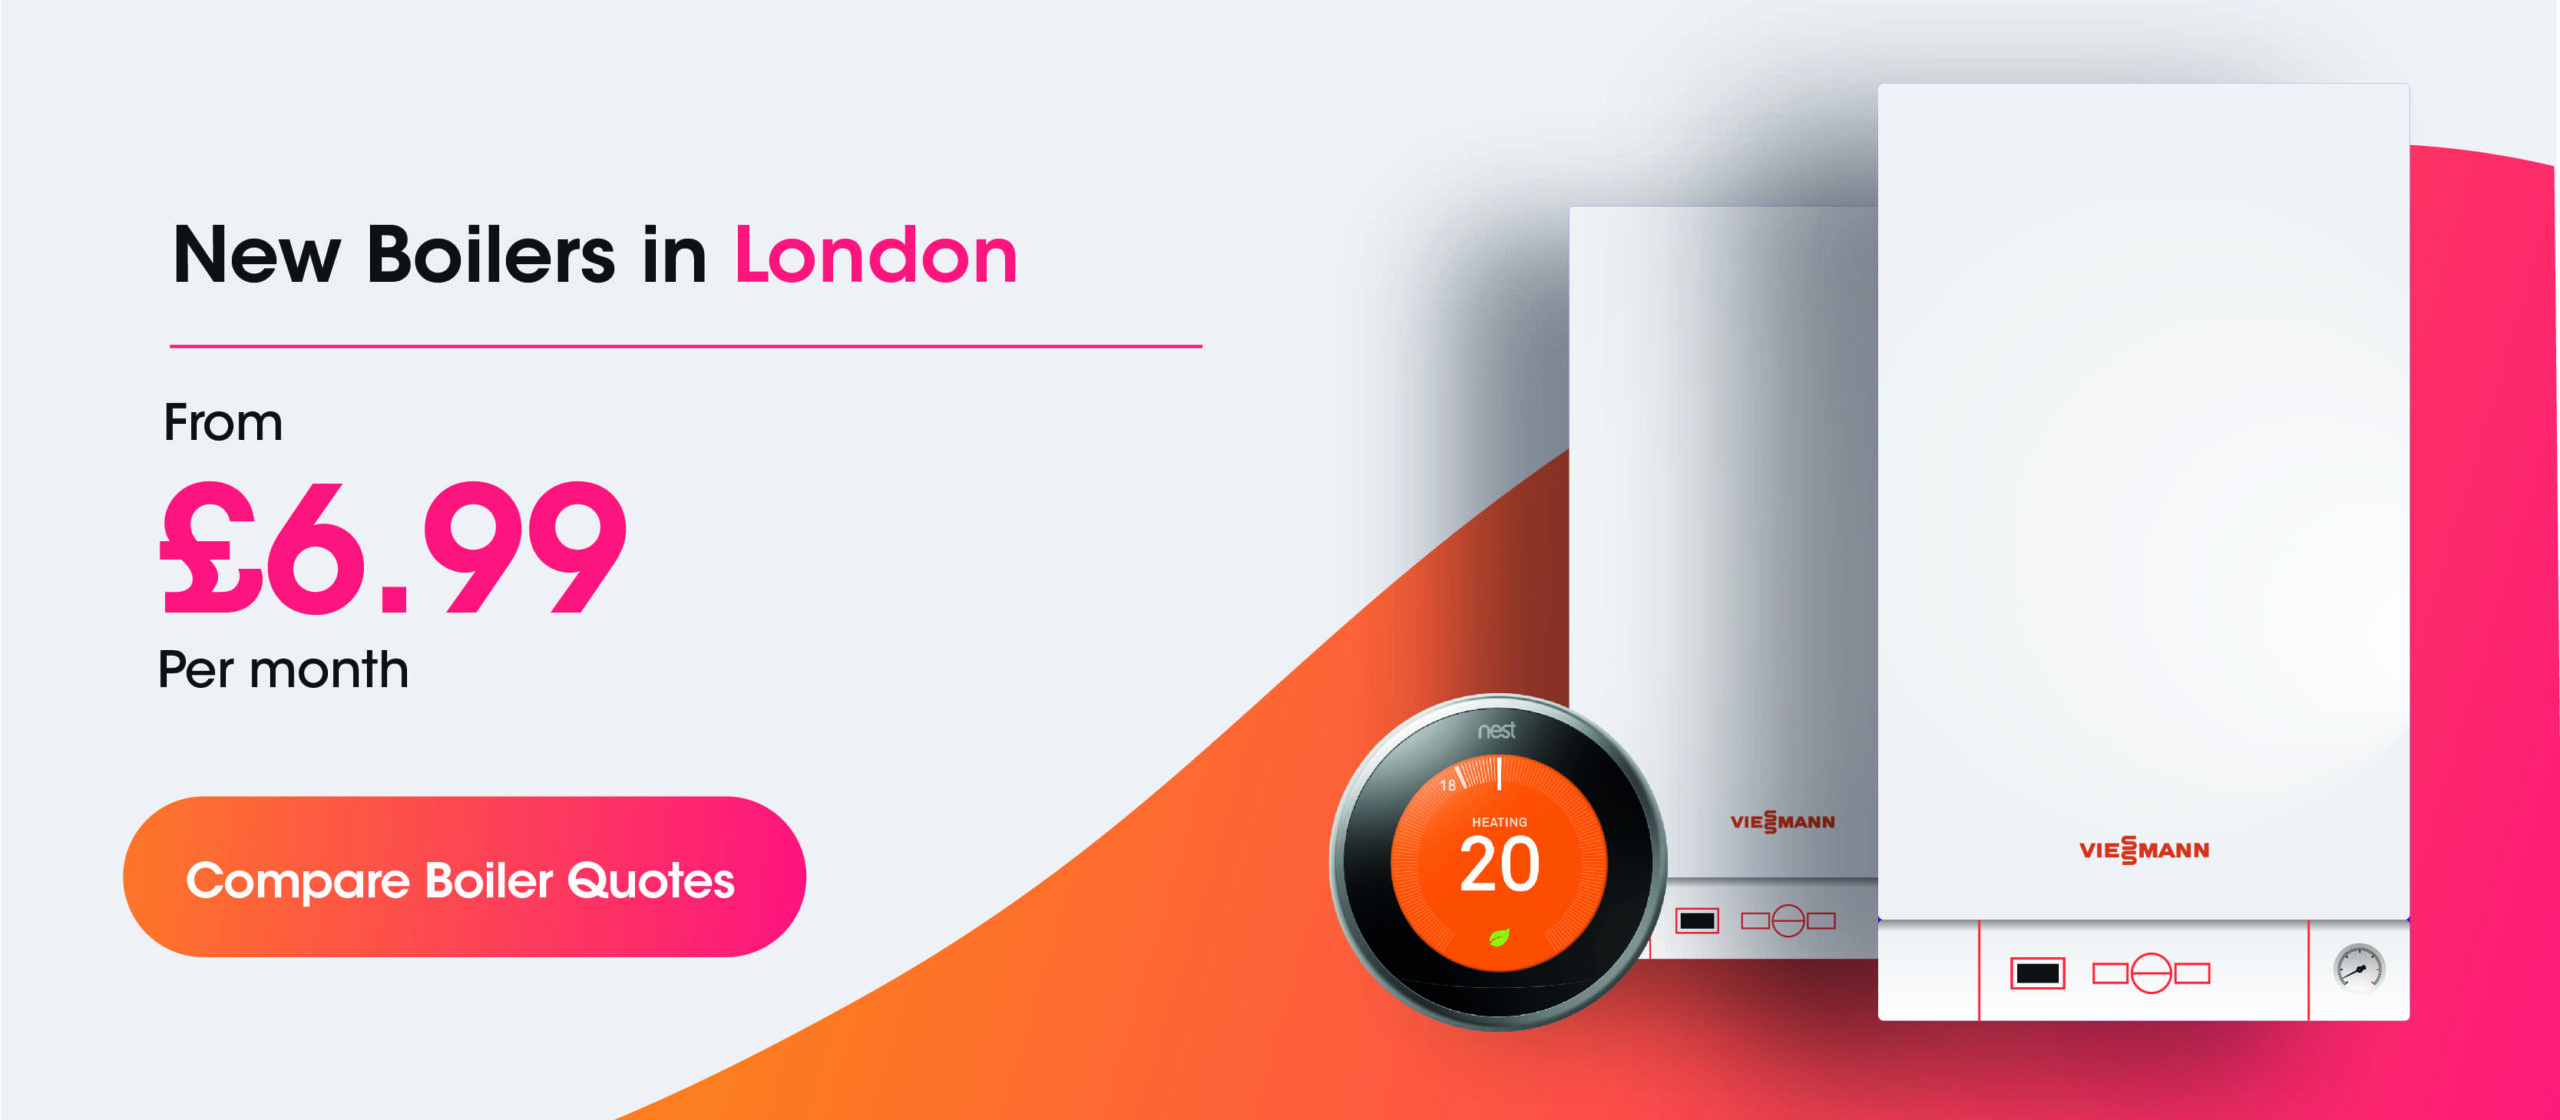 London boiler installation - Get a new boiler in London Compare Boiler Quotes